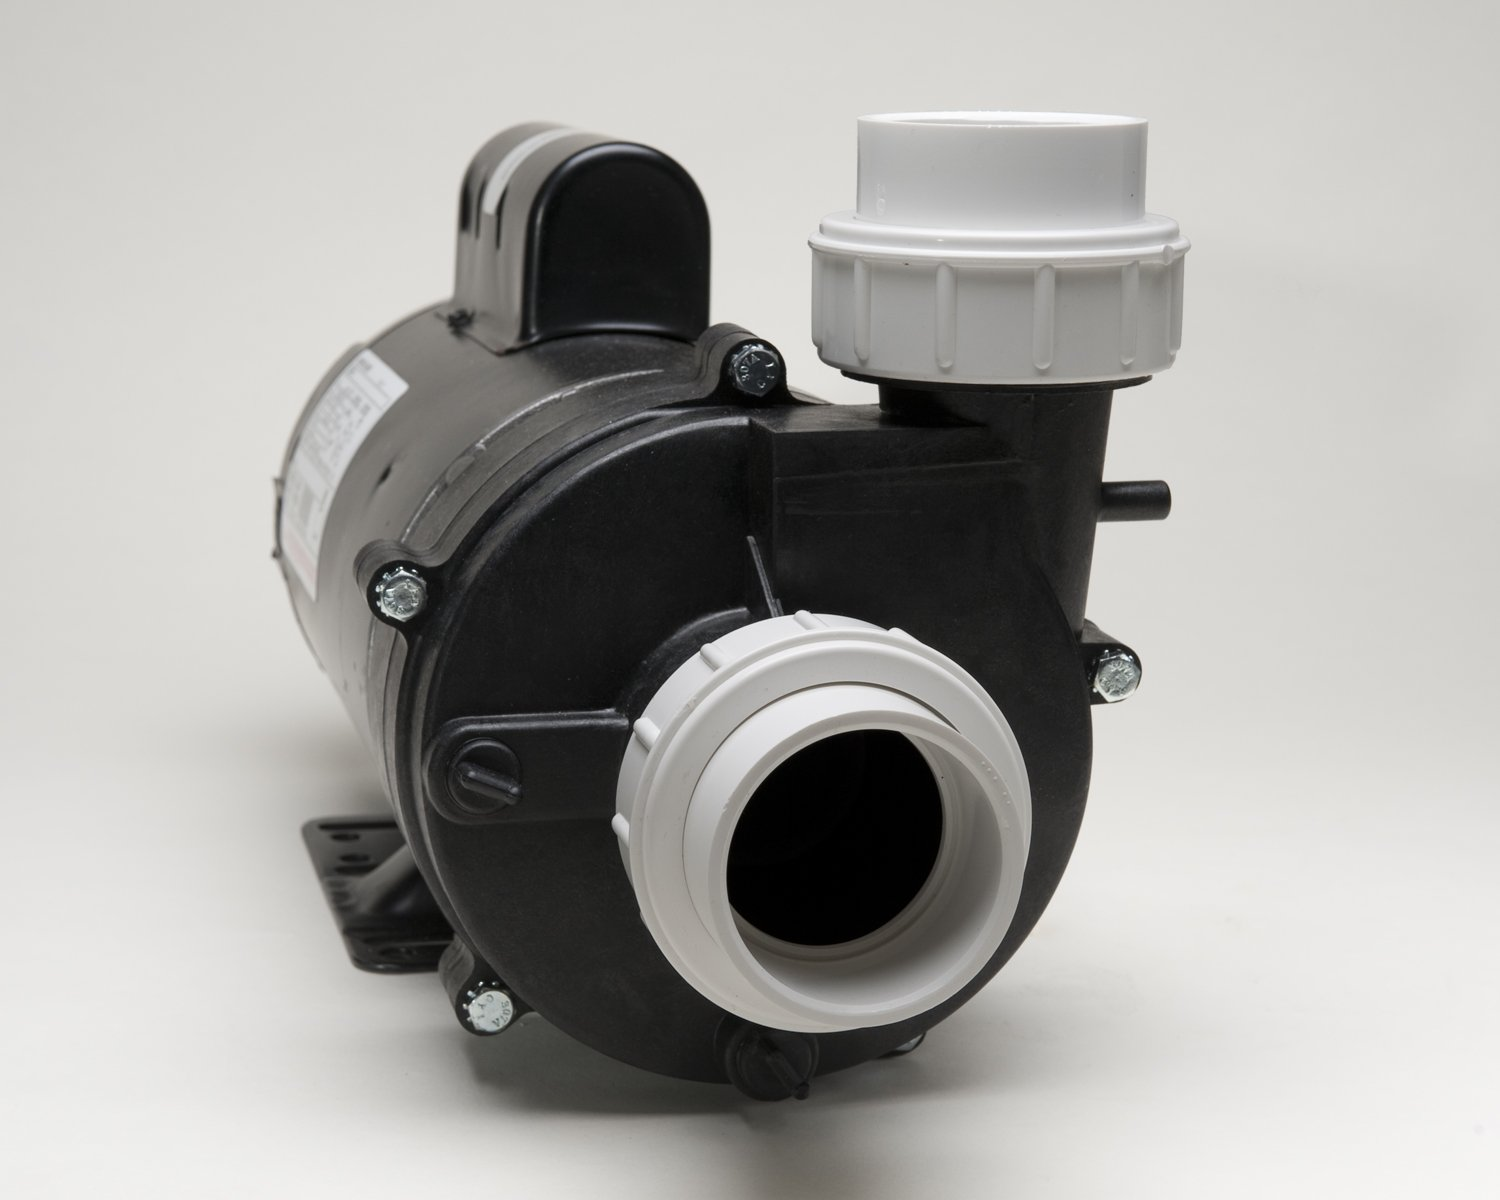 61yNAFK9IqL._SL1500_ amazon com 3 hp spa pump vico ultimax by ultrajet balboa  at reclaimingppi.co